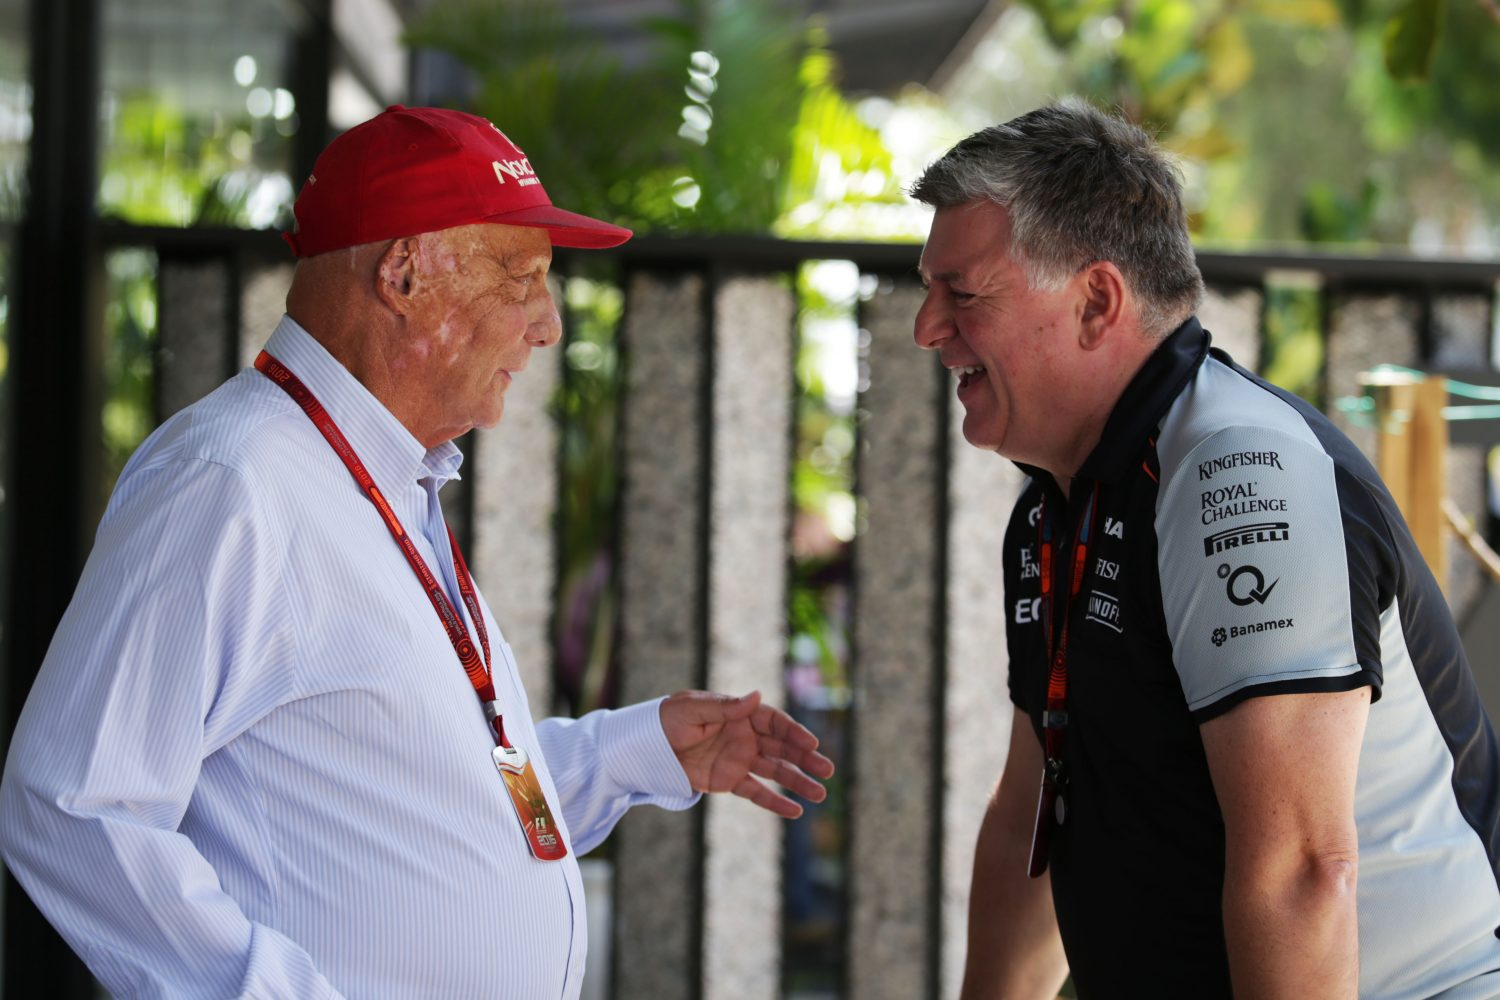 Formula One World Championship 2016, Round 16, Malaysian Grand Prix, Kuala Lumpur, Malaysia, Sunday 2 October 2016 - L to R): Niki Lauda (AUT) Mercedes Non-Executive Chairman with Otmar Szafnauer (USA) Sahara Force India F1 Chief Operating Officer.